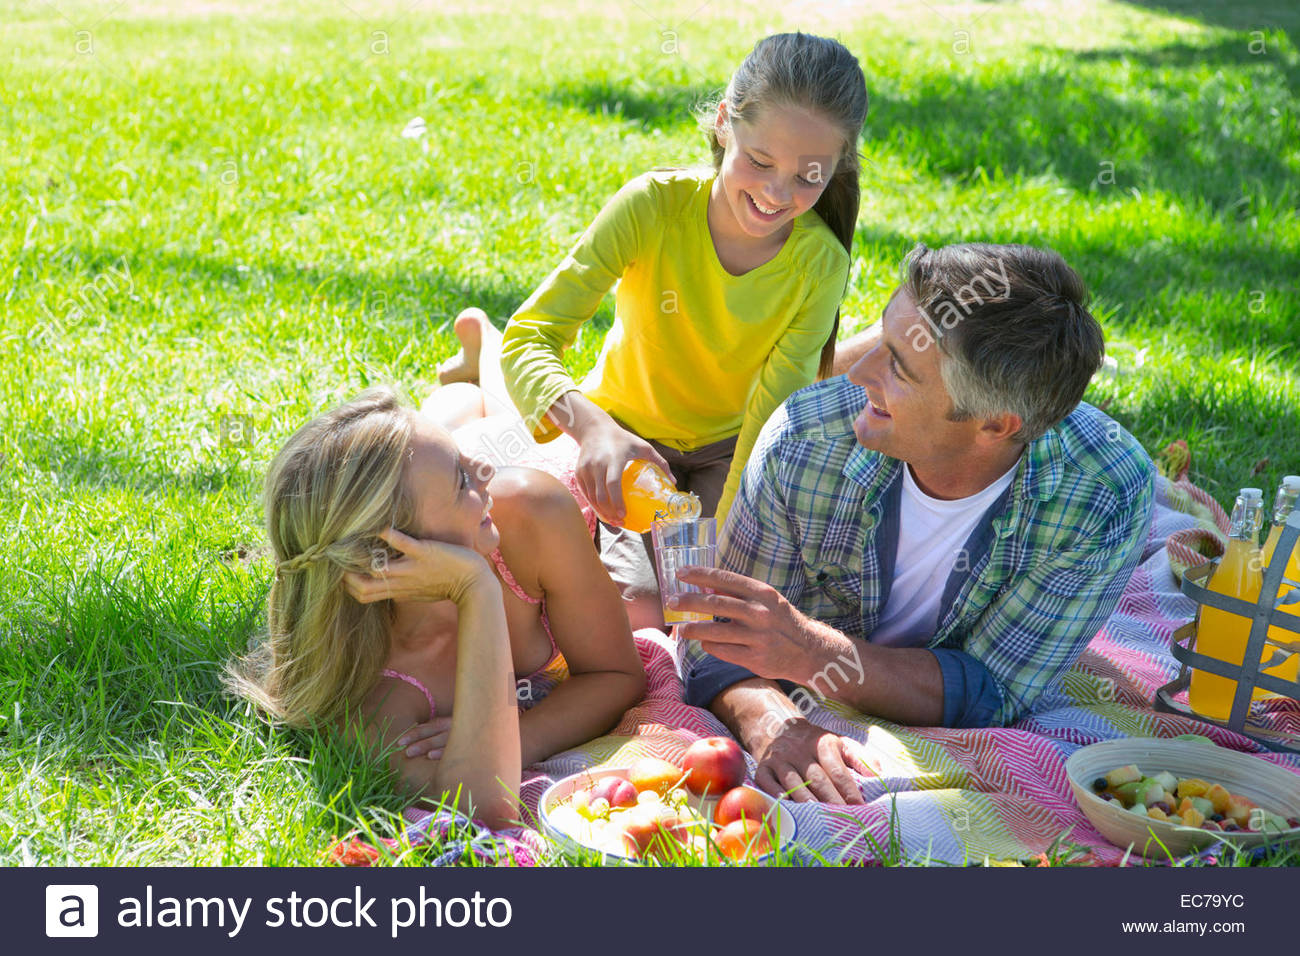 Family having a picnic in countryside - Stock Image